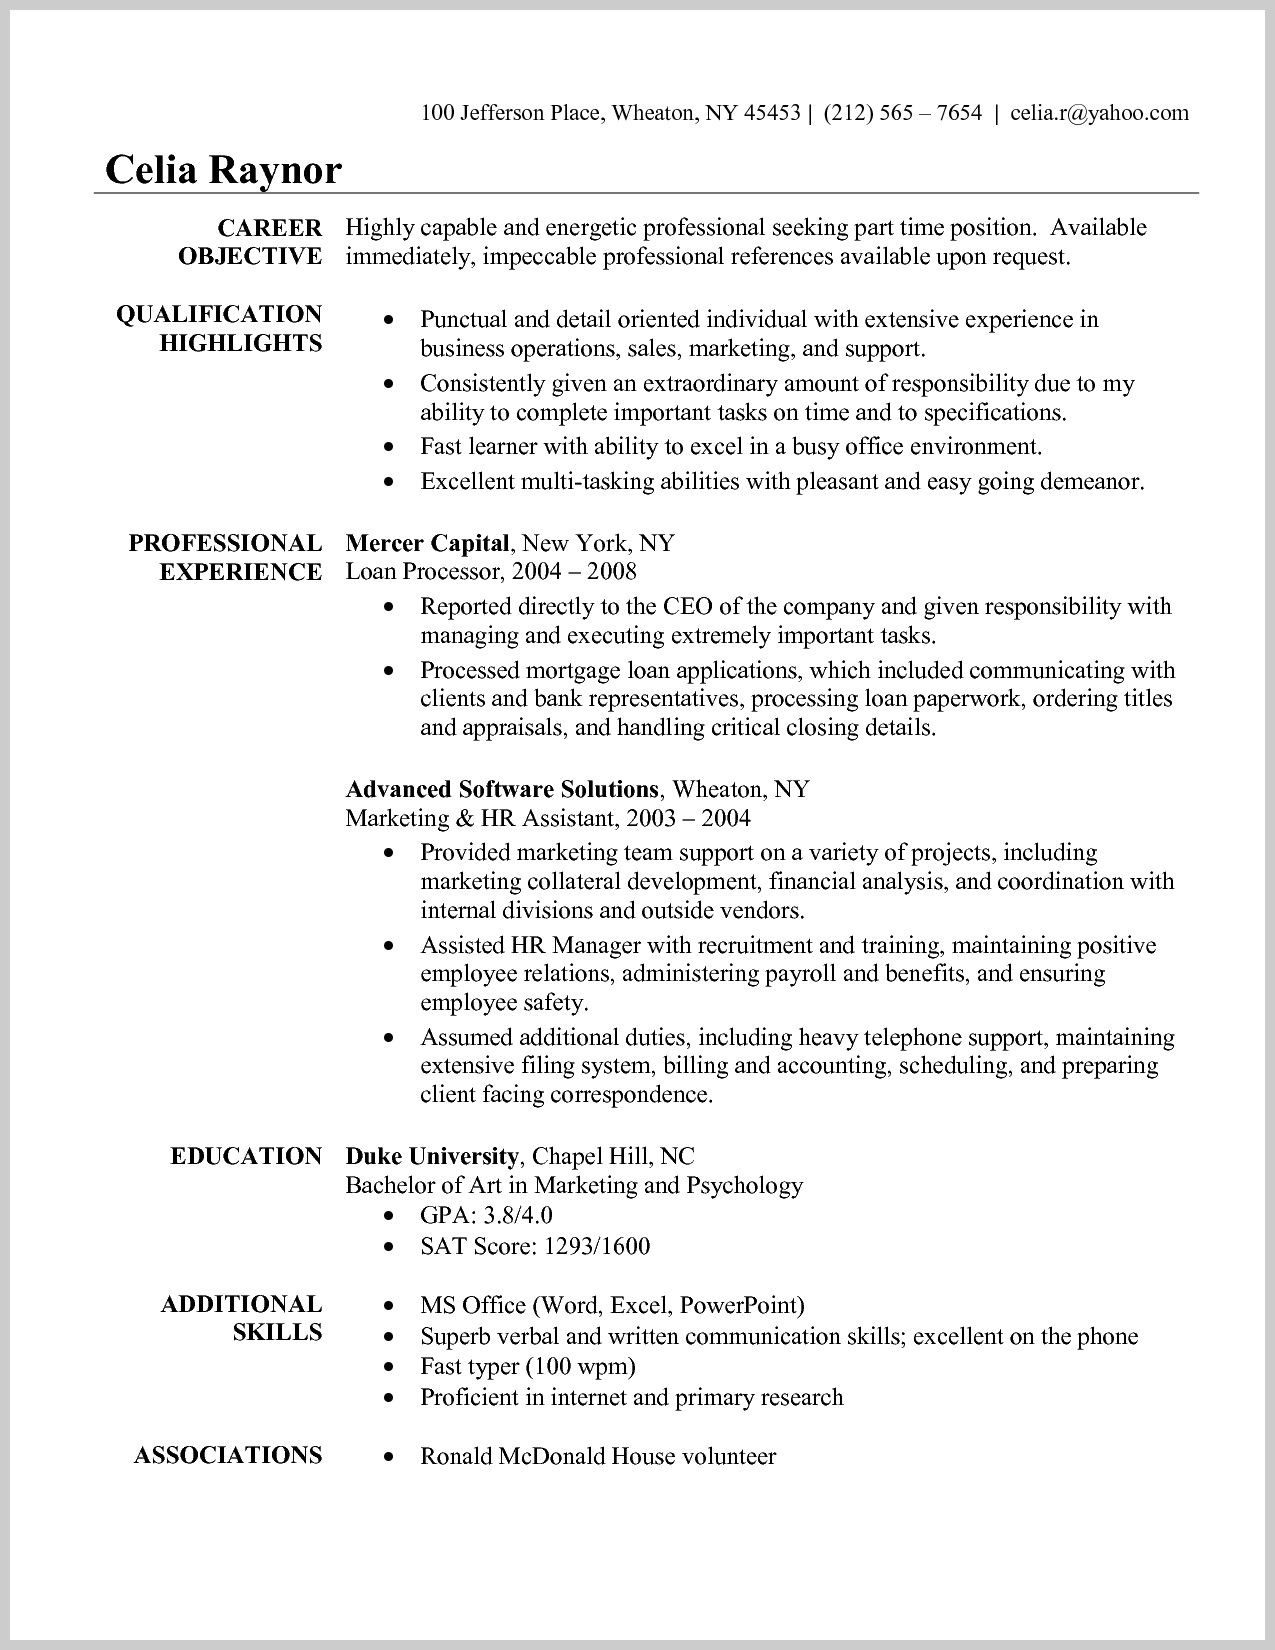 Quick Learner Administrative assistant resume, Resume